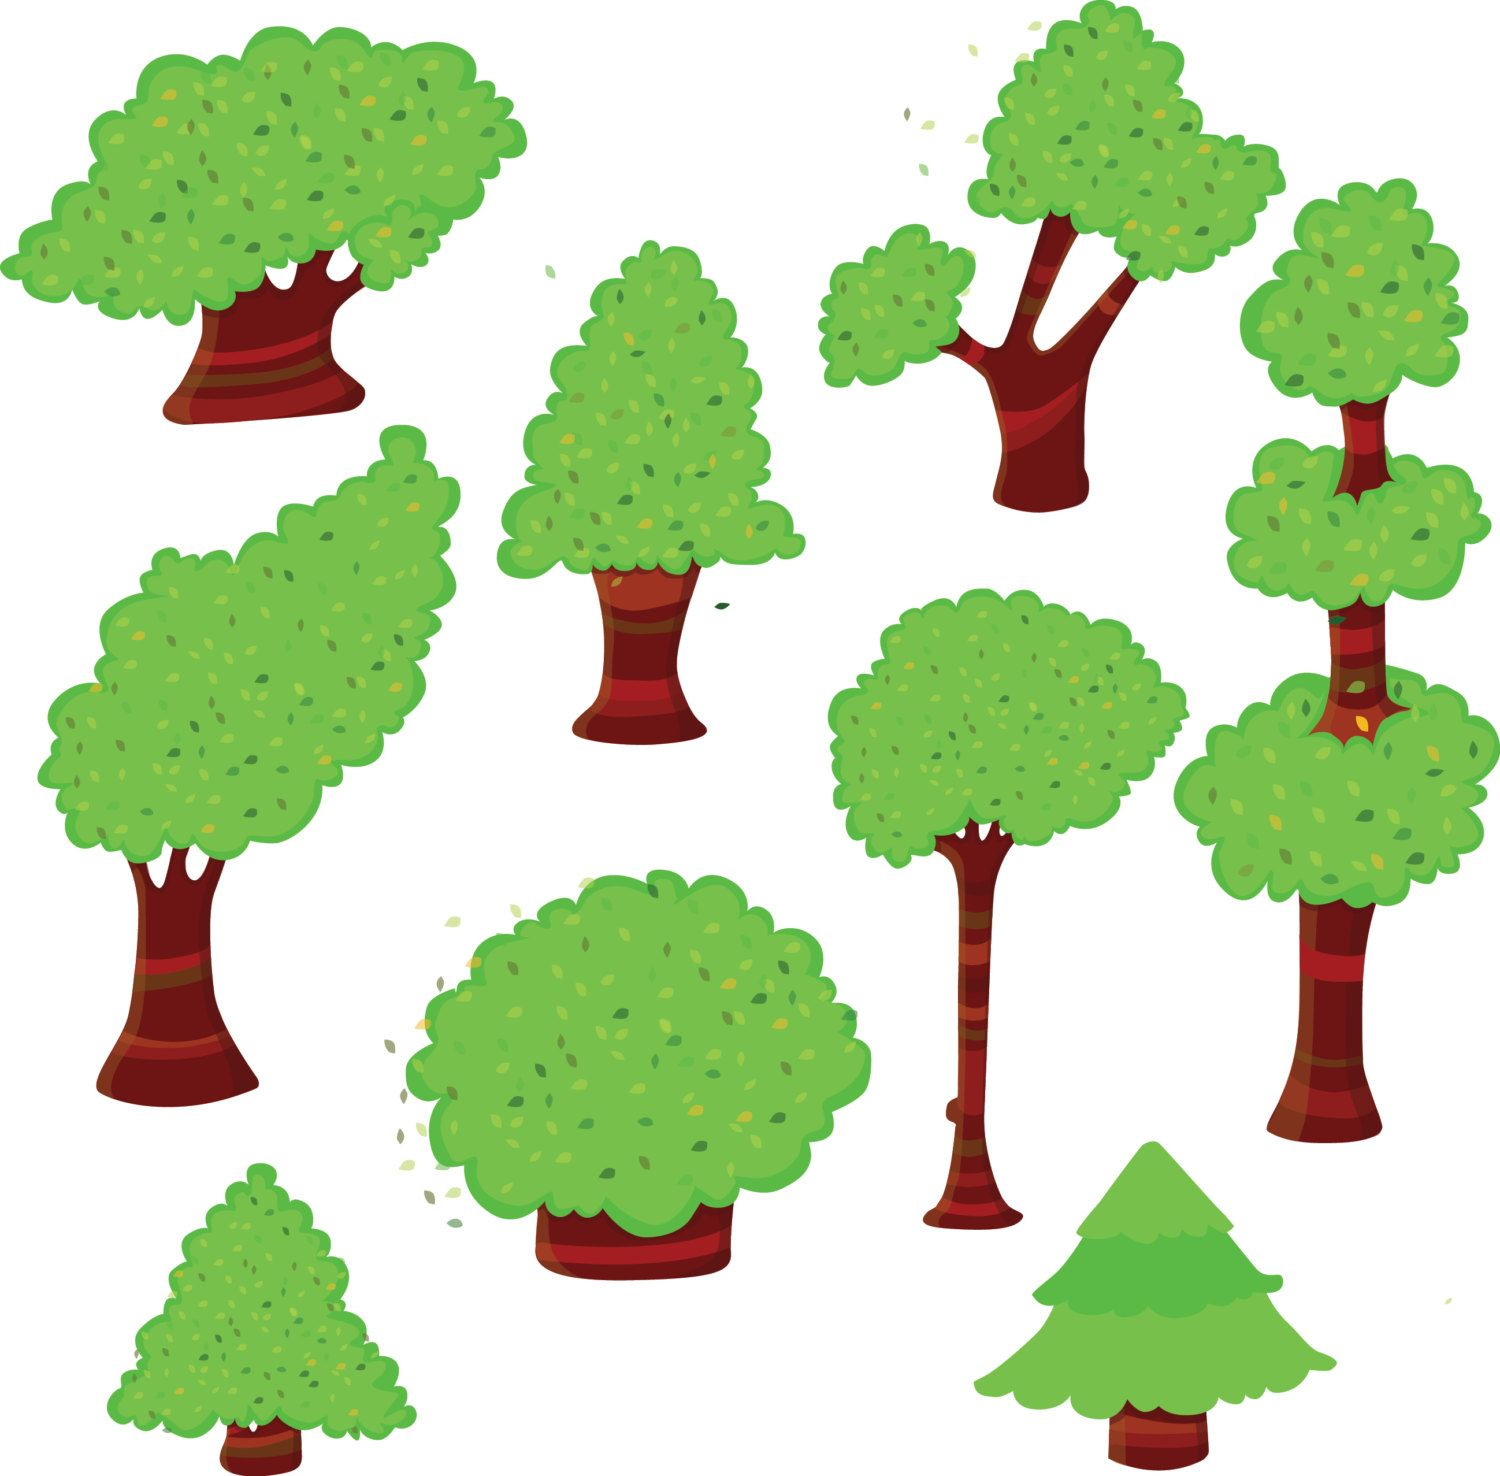 trees clipart green trees clipart tree clipart woodland clip art rh pinterest co uk clipart for store clip art forest animals